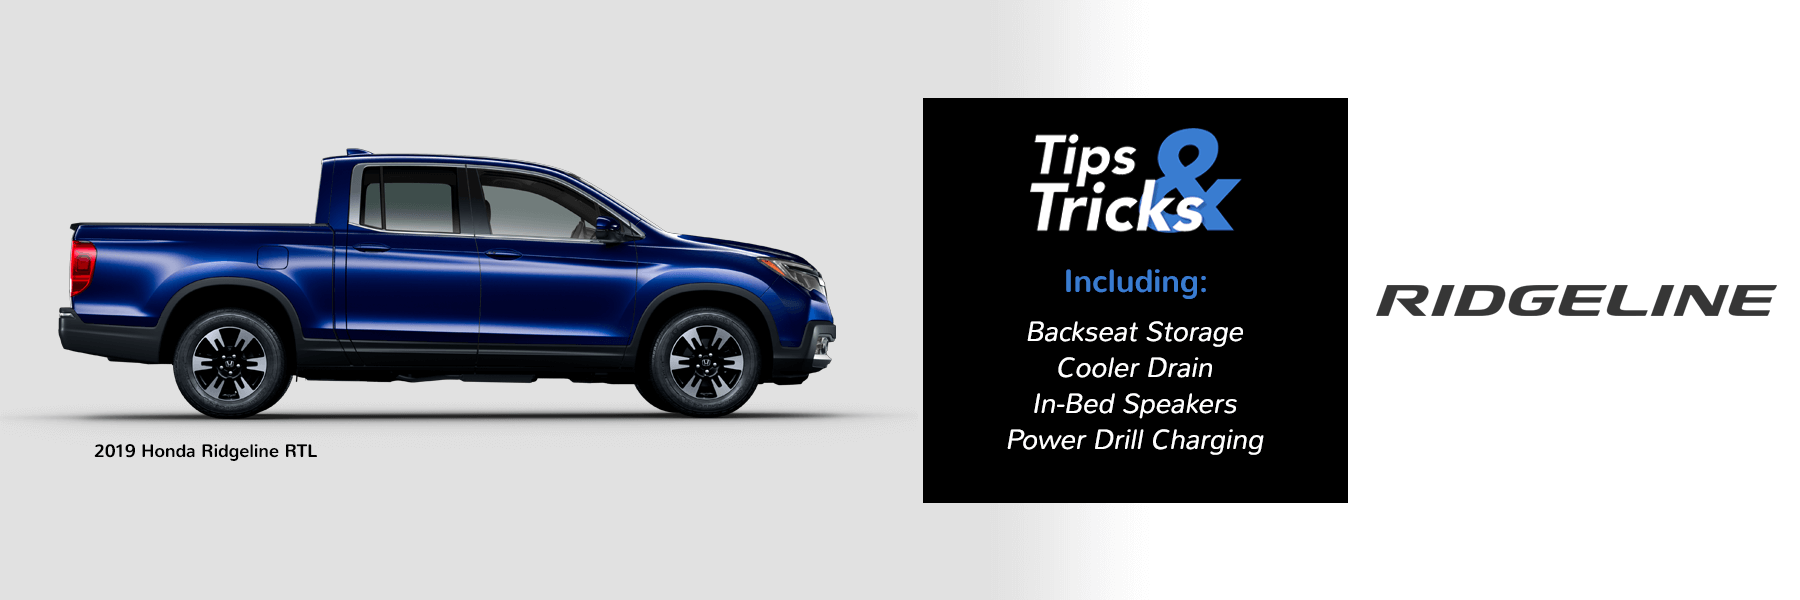 Honda Tips and Tricks 2019 Ridgeline Slider